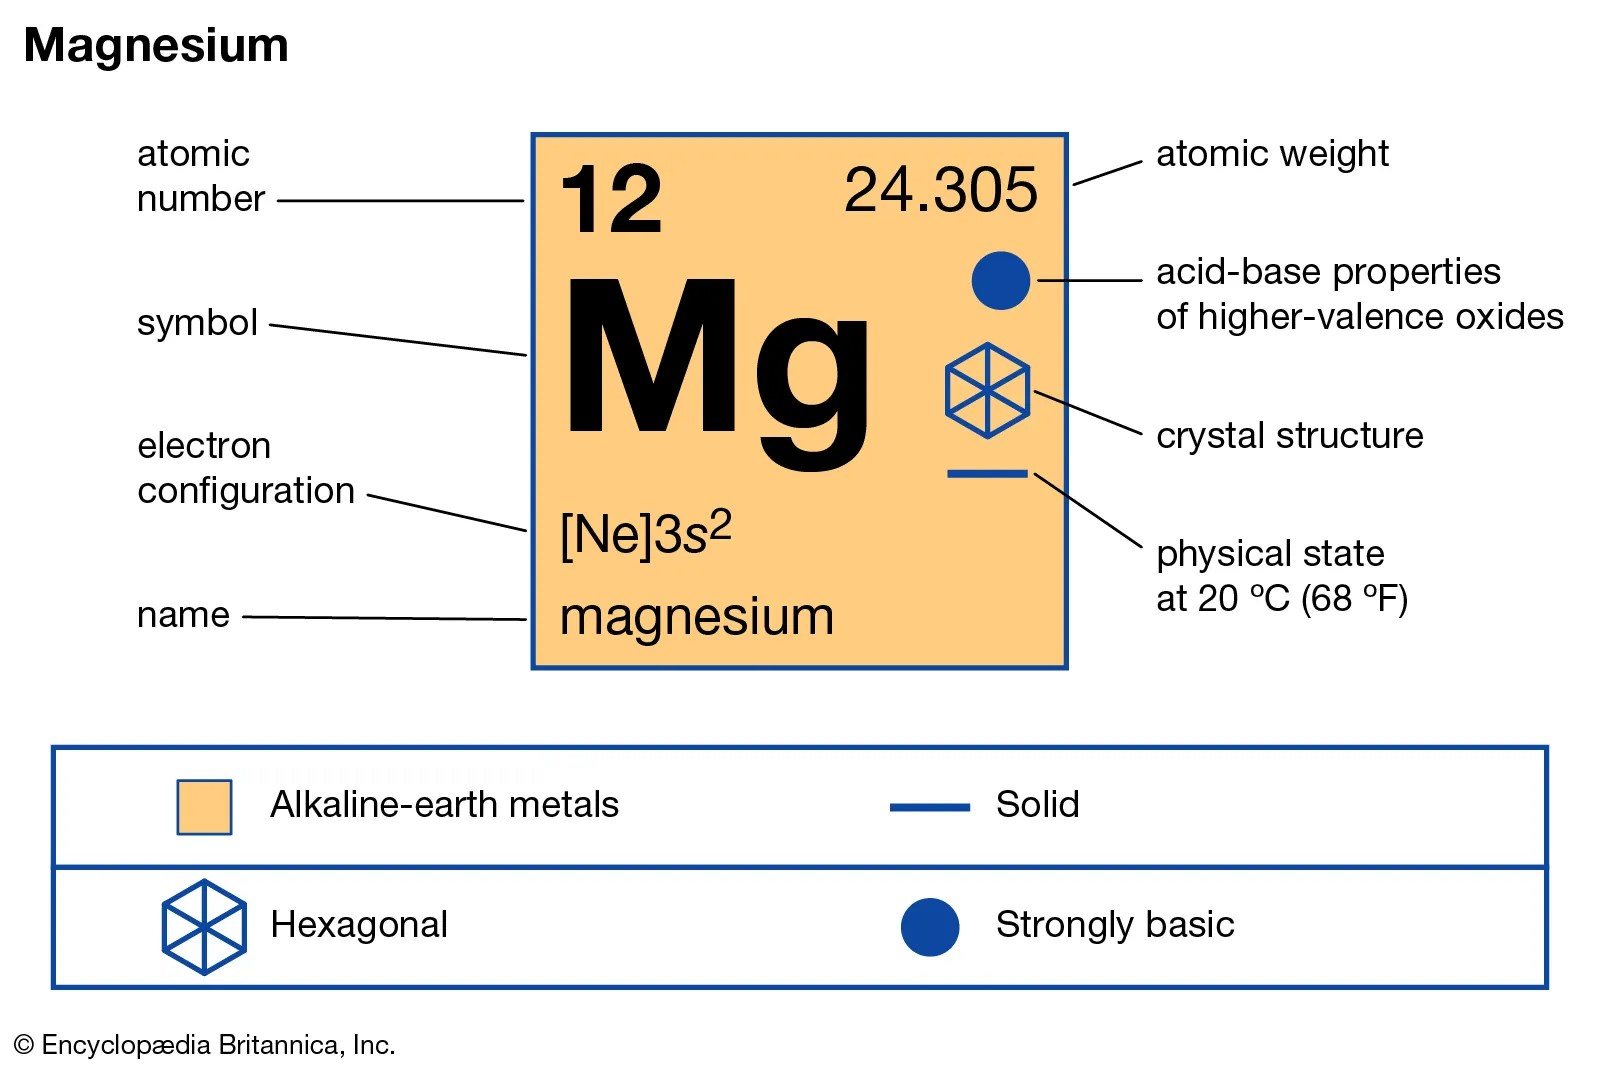 Chemical Equation For Synthesis Of Magnesium Oxide From